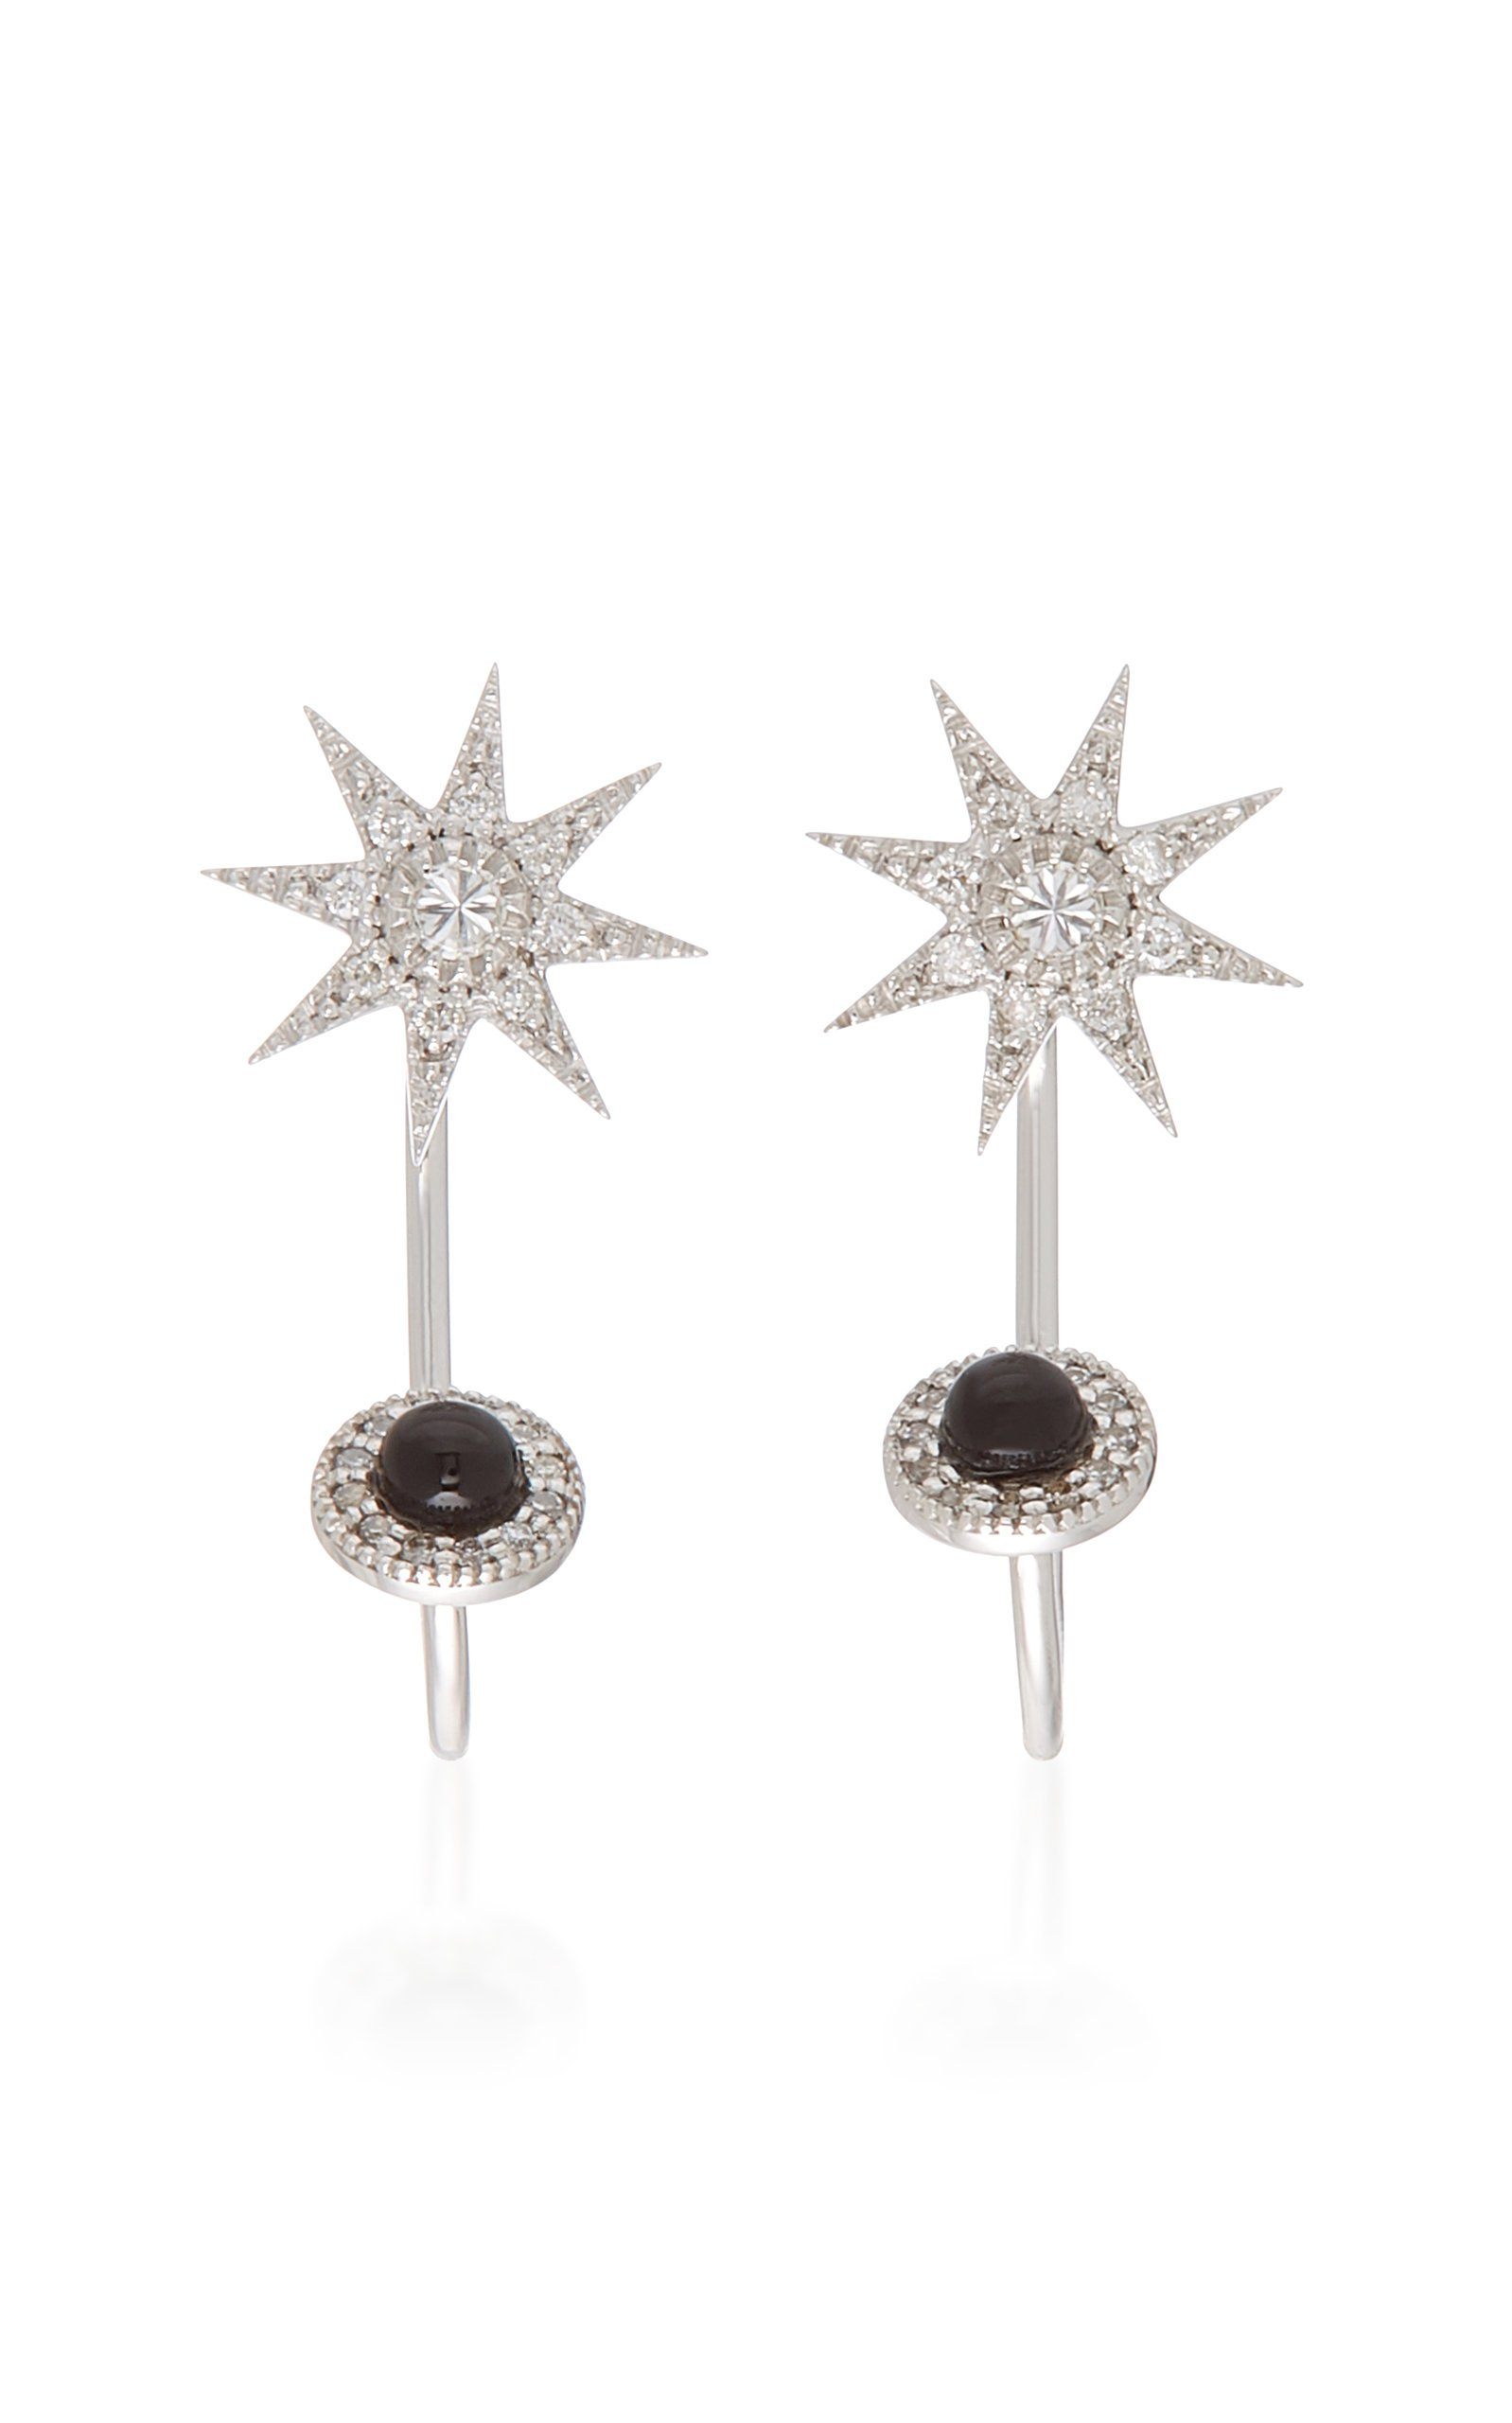 Colette Jewelry Phoebe 18K Gold and Diamond Star Earrings